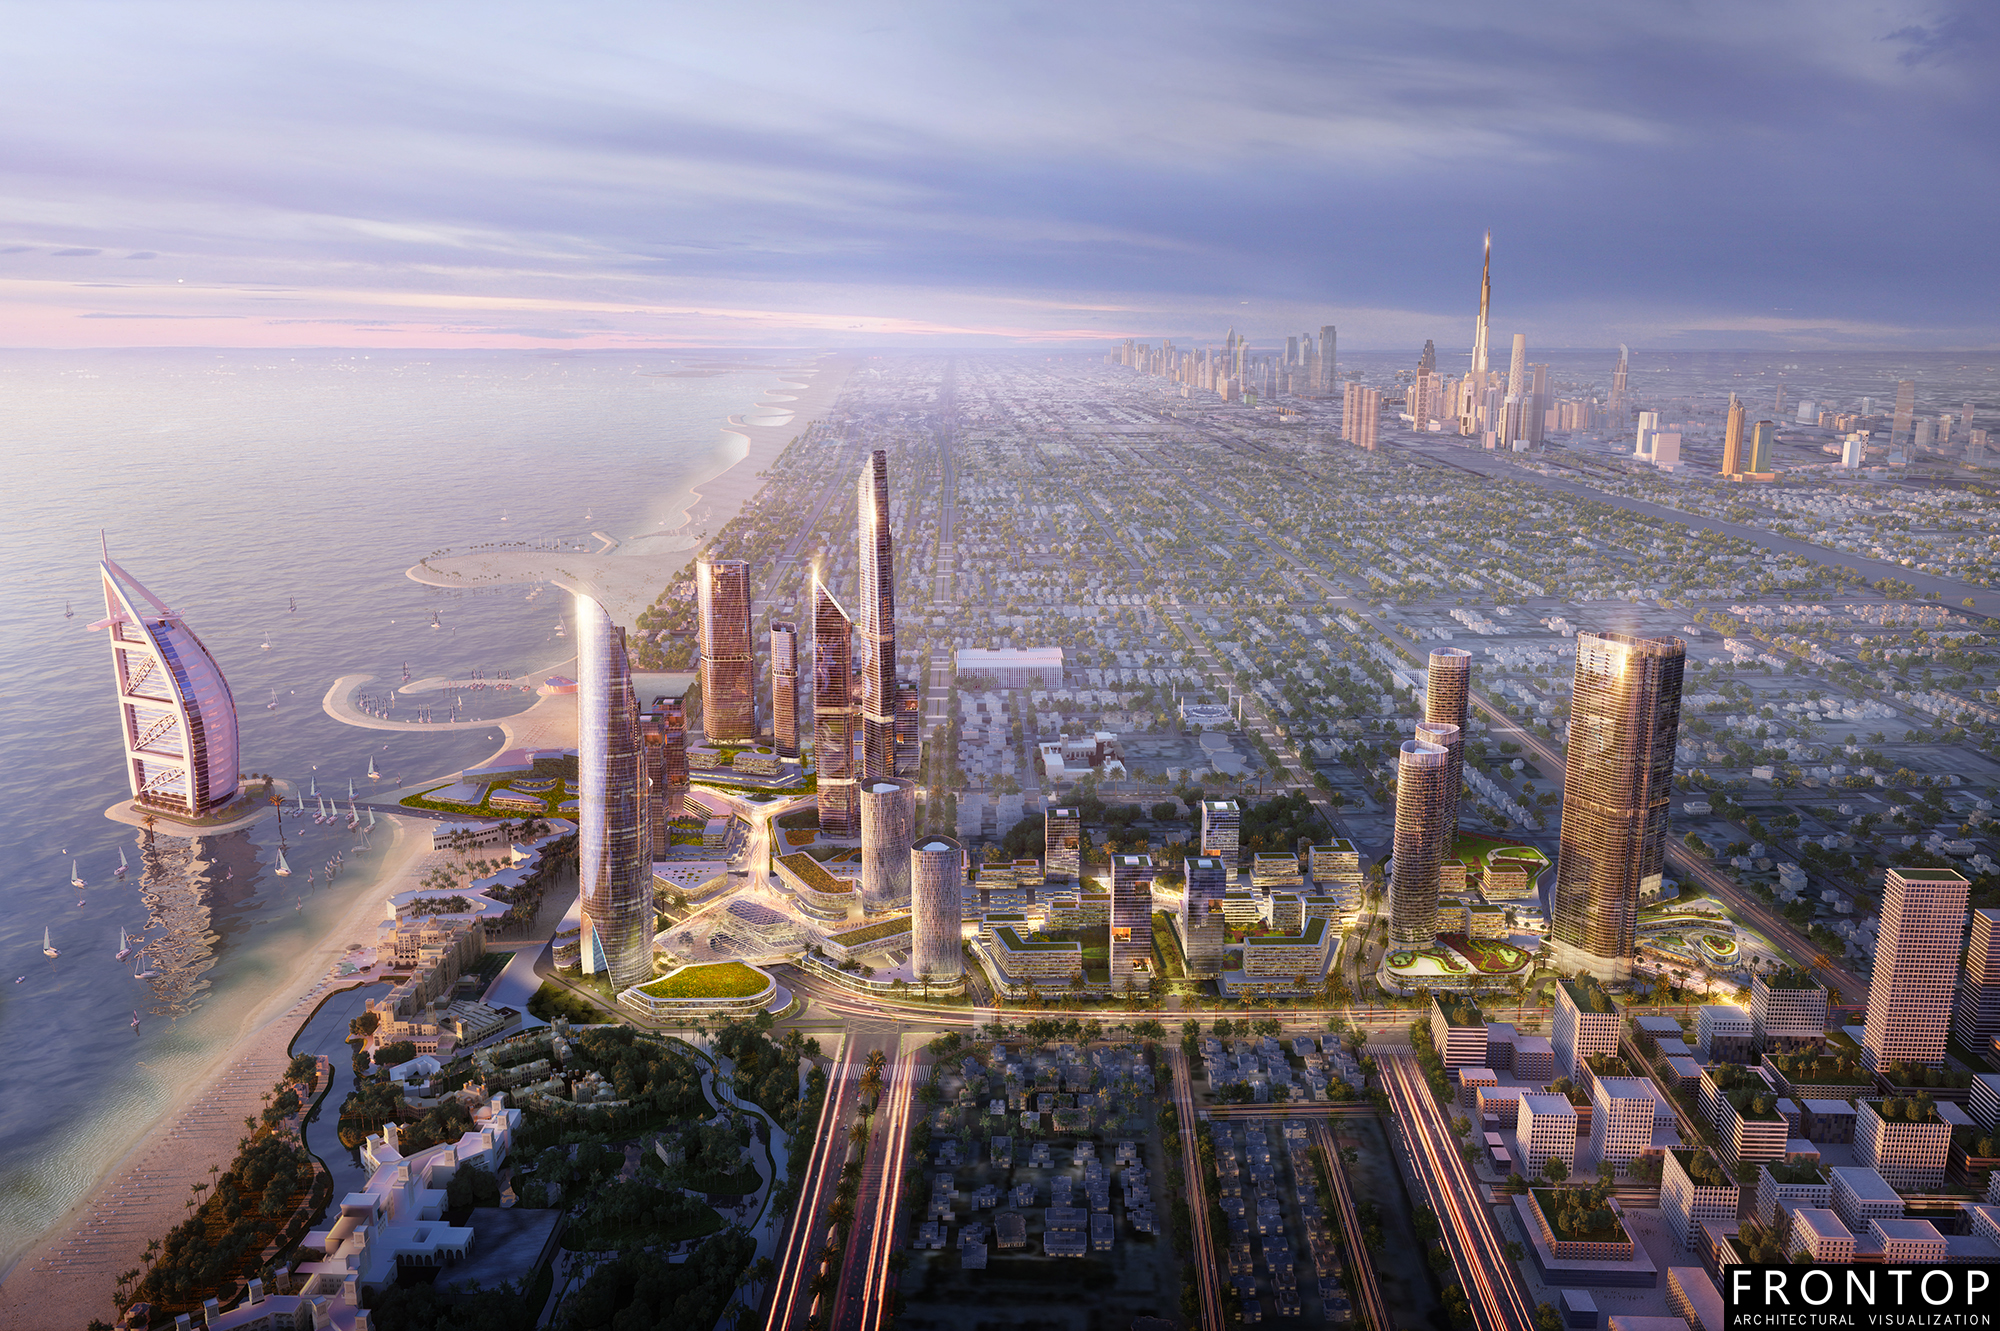 China wholesale 3d Rendering - Jumeirah District – Frontop